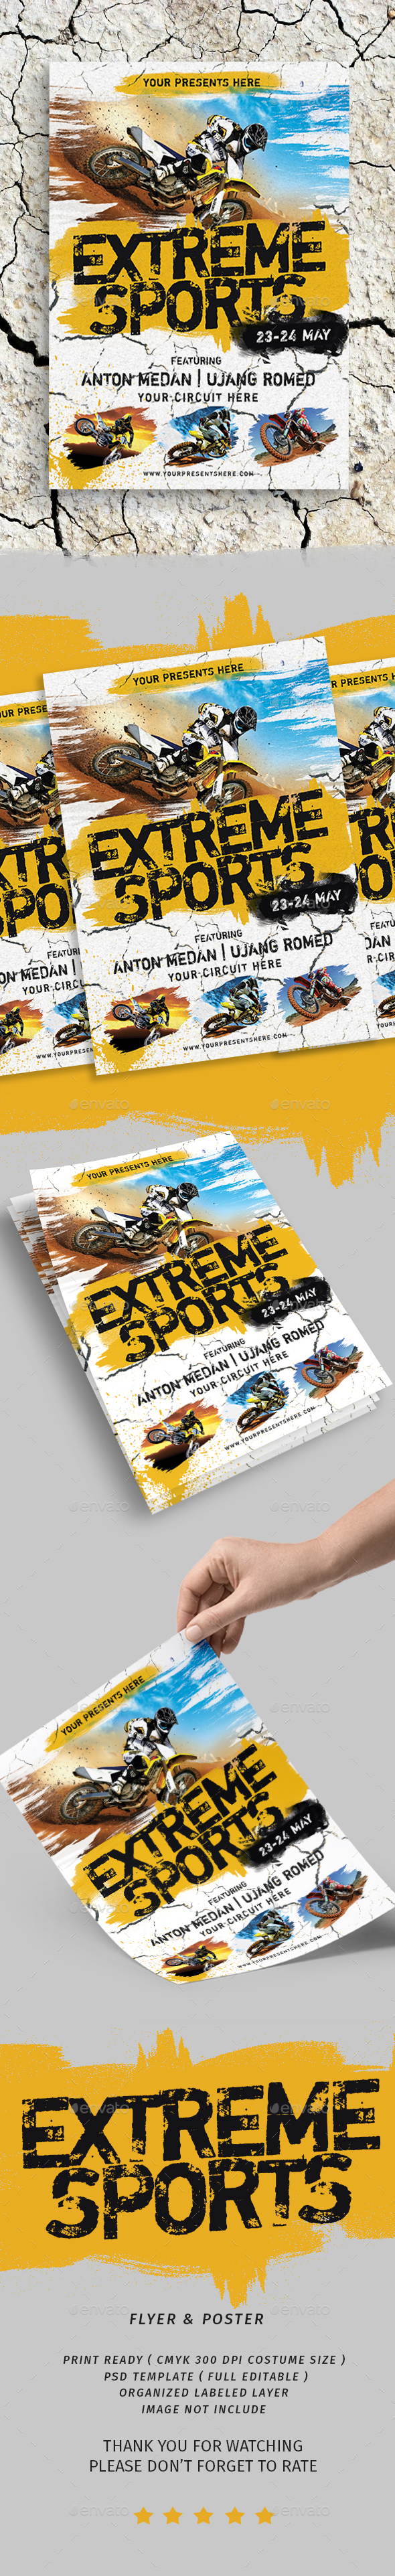 Extreme Sports Flyer - Sports Events